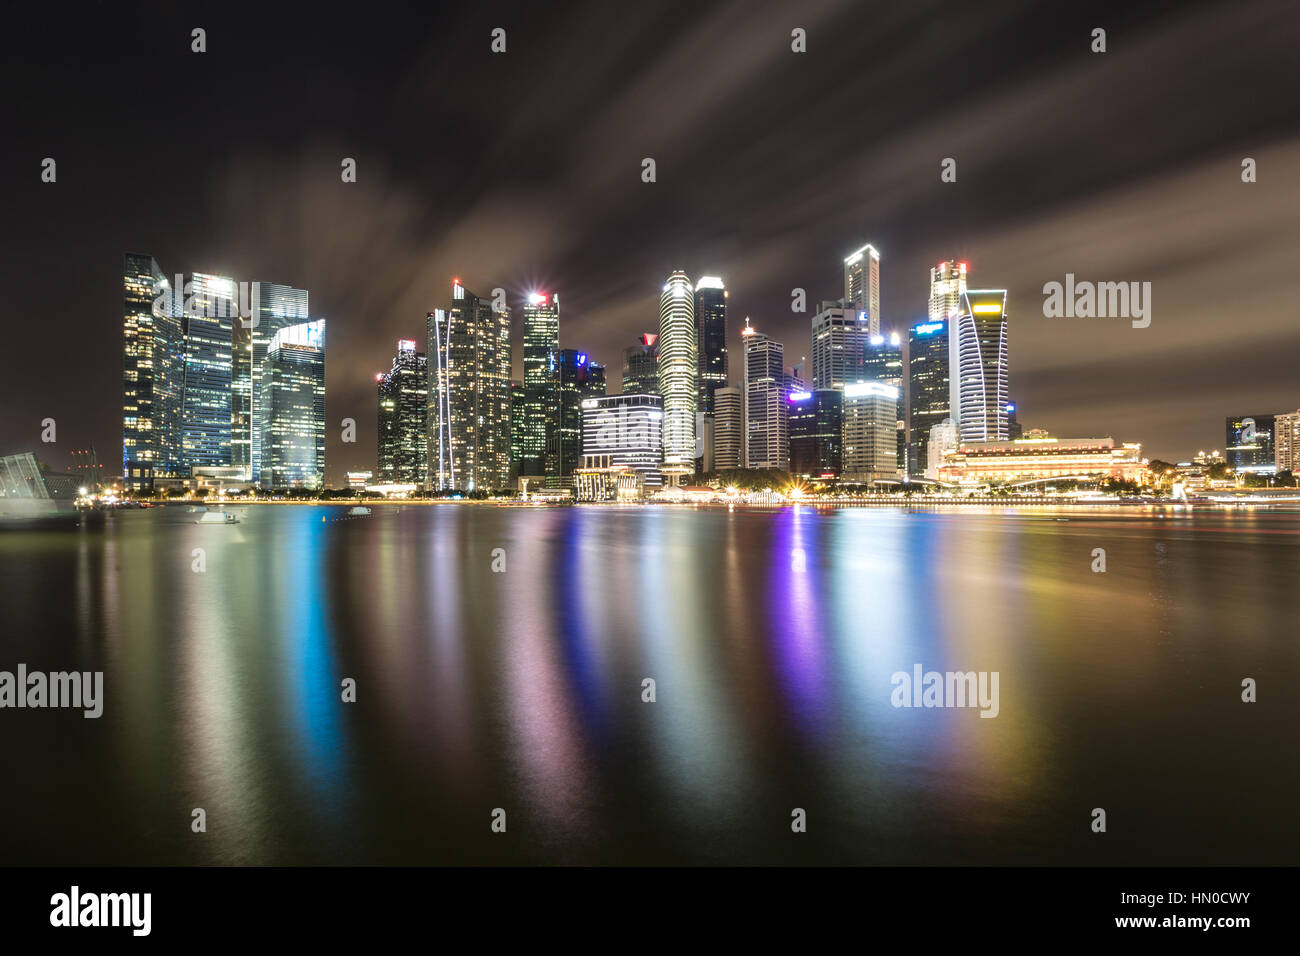 A reflection of the skyscrapers of Singapore business district skyline in the Marina bay from the waterfront promenade. - Stock Image